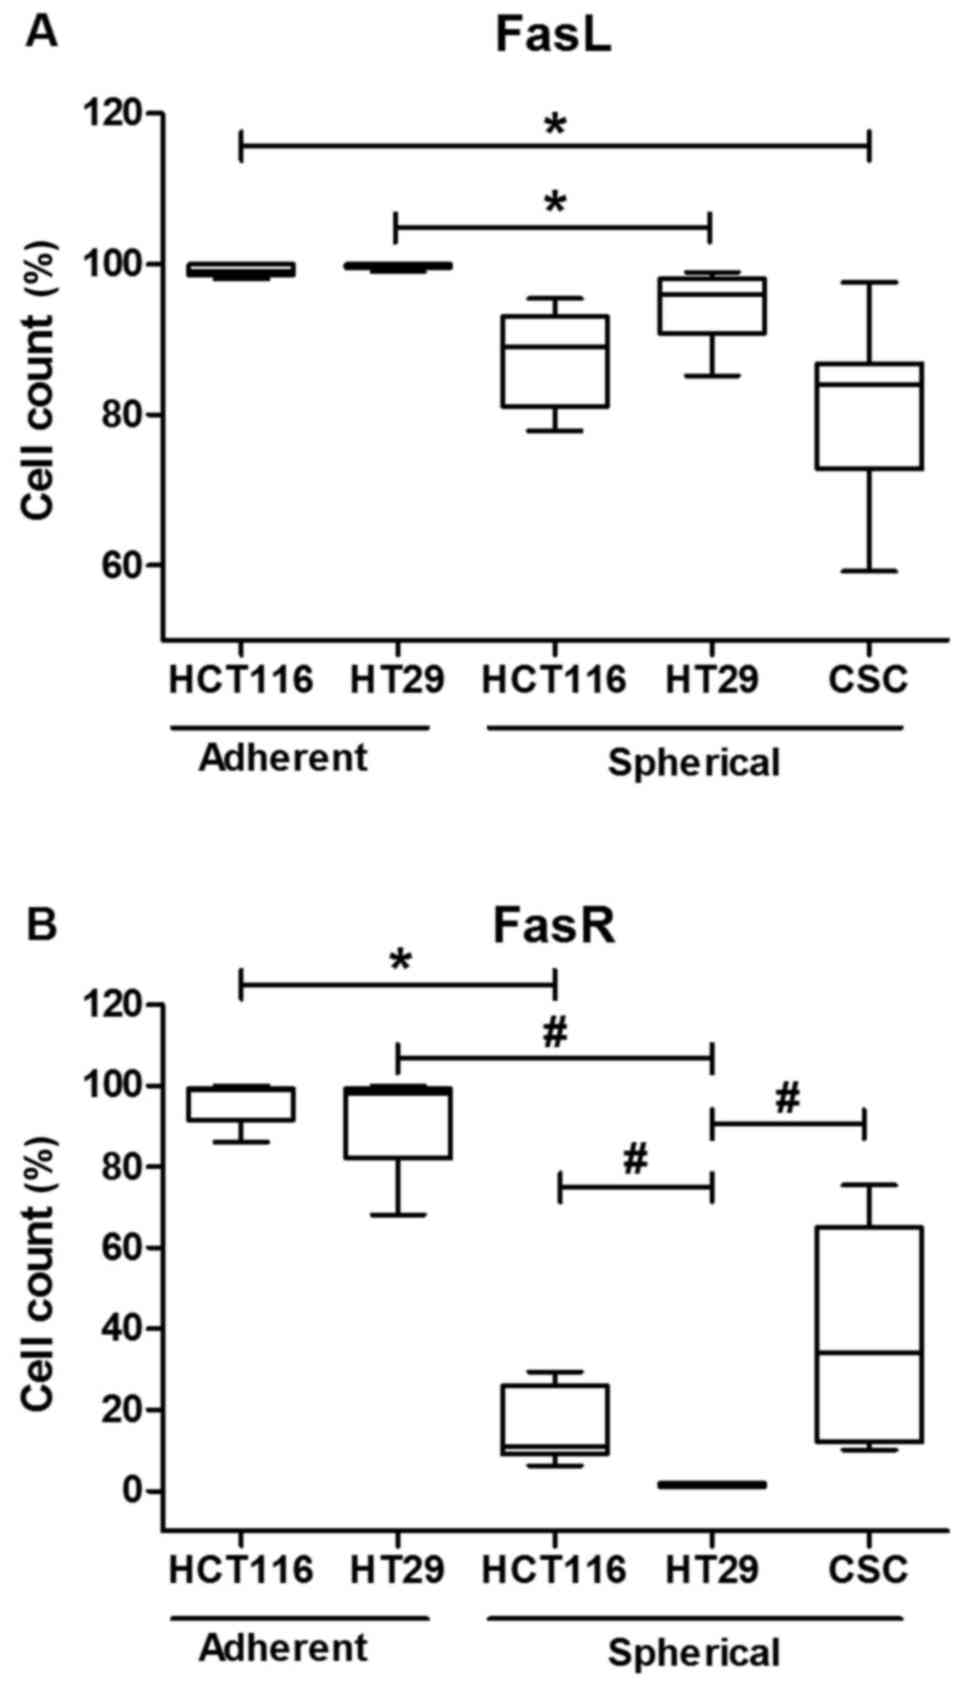 FasR and FasL in colorectal cancer